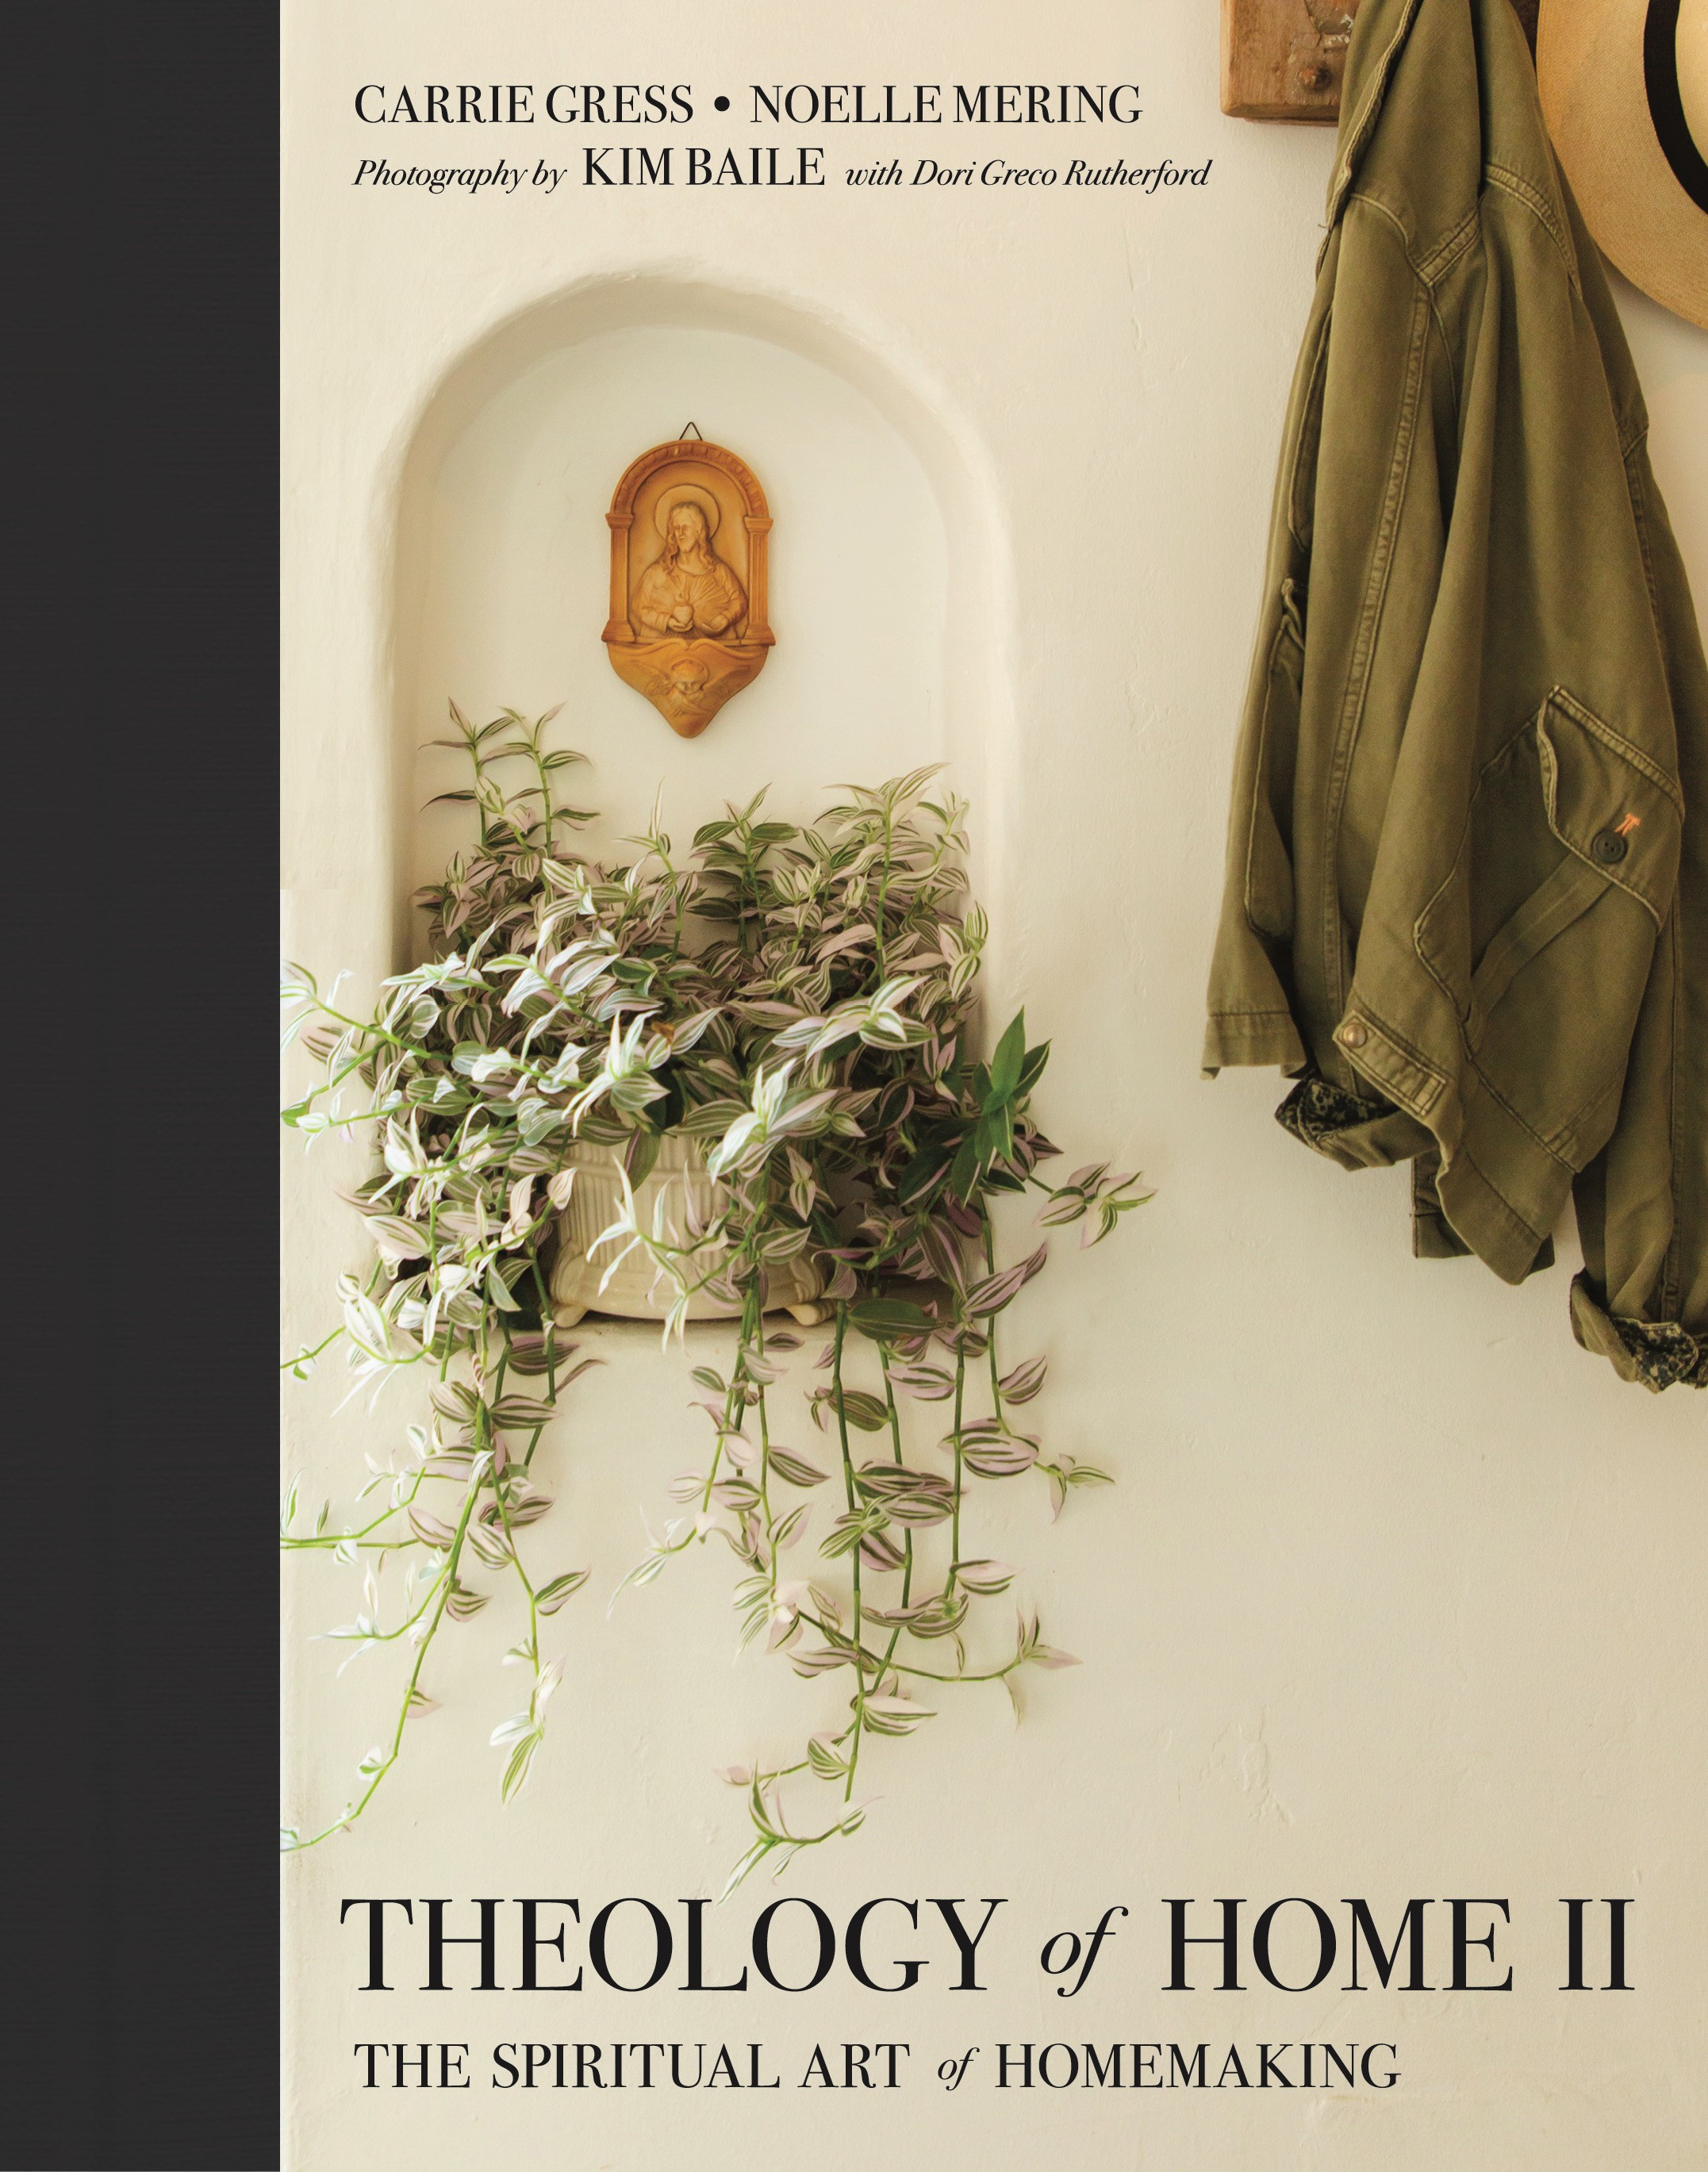 Theology of Home II The Spiritual Art of Homemaking / Carrie Gress and Noelle Mering